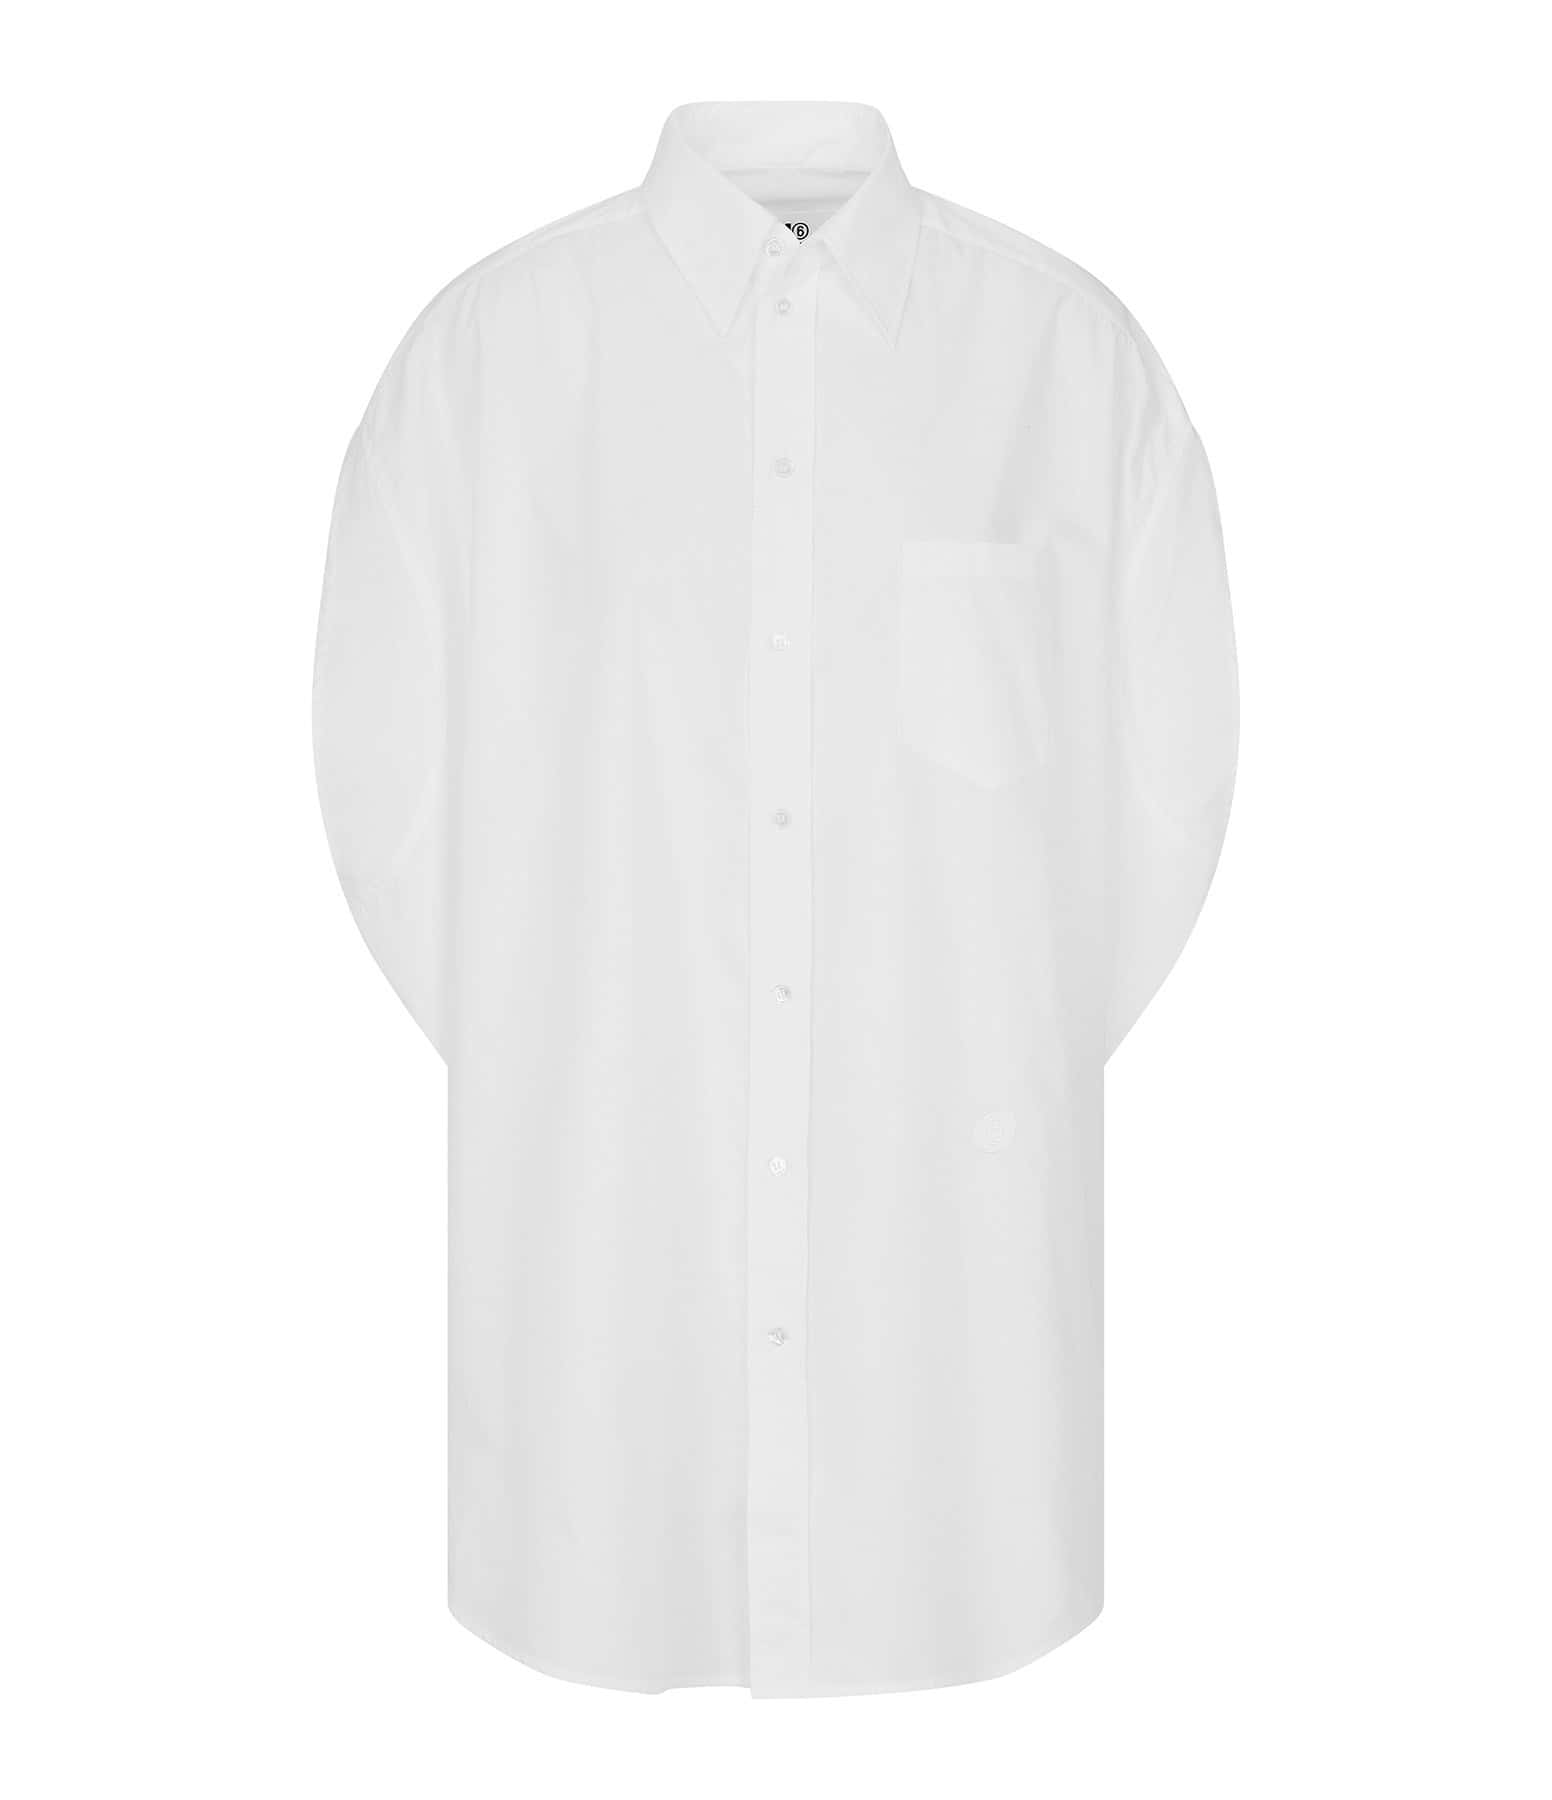 MM6 MAISON MARGIELA - Chemise Oversize Blanc, Collection Studio